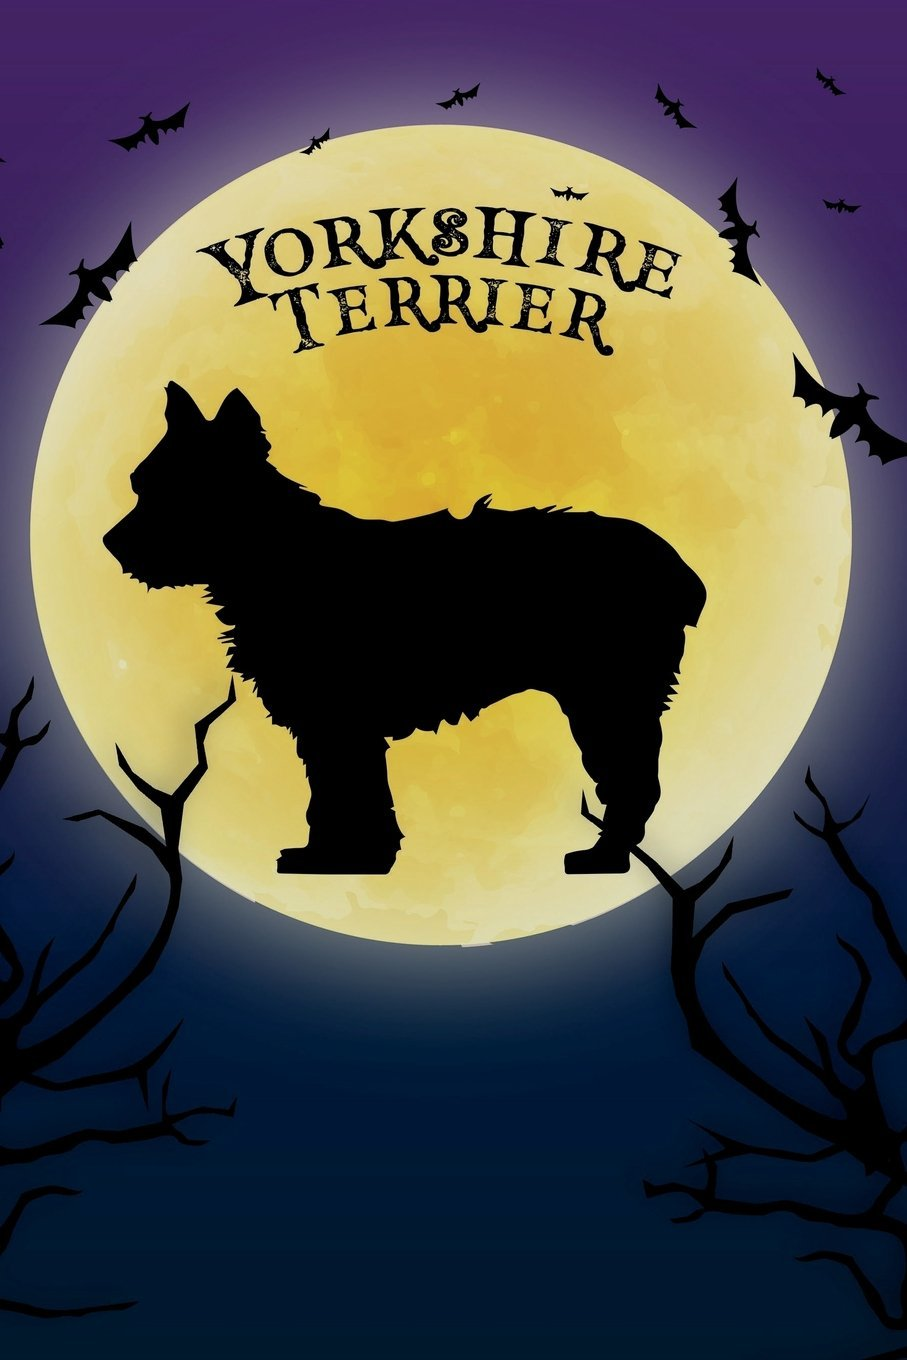 Download Yorkshire Terrier Notebook Halloween Journal: Spooky Halloween Themed Blank Lined Composition Book/Diary/Journal For Yorkie Dog Lovers, 6 x 9, 130 Pages, Full Moon, Bats, Scary Trees PDF